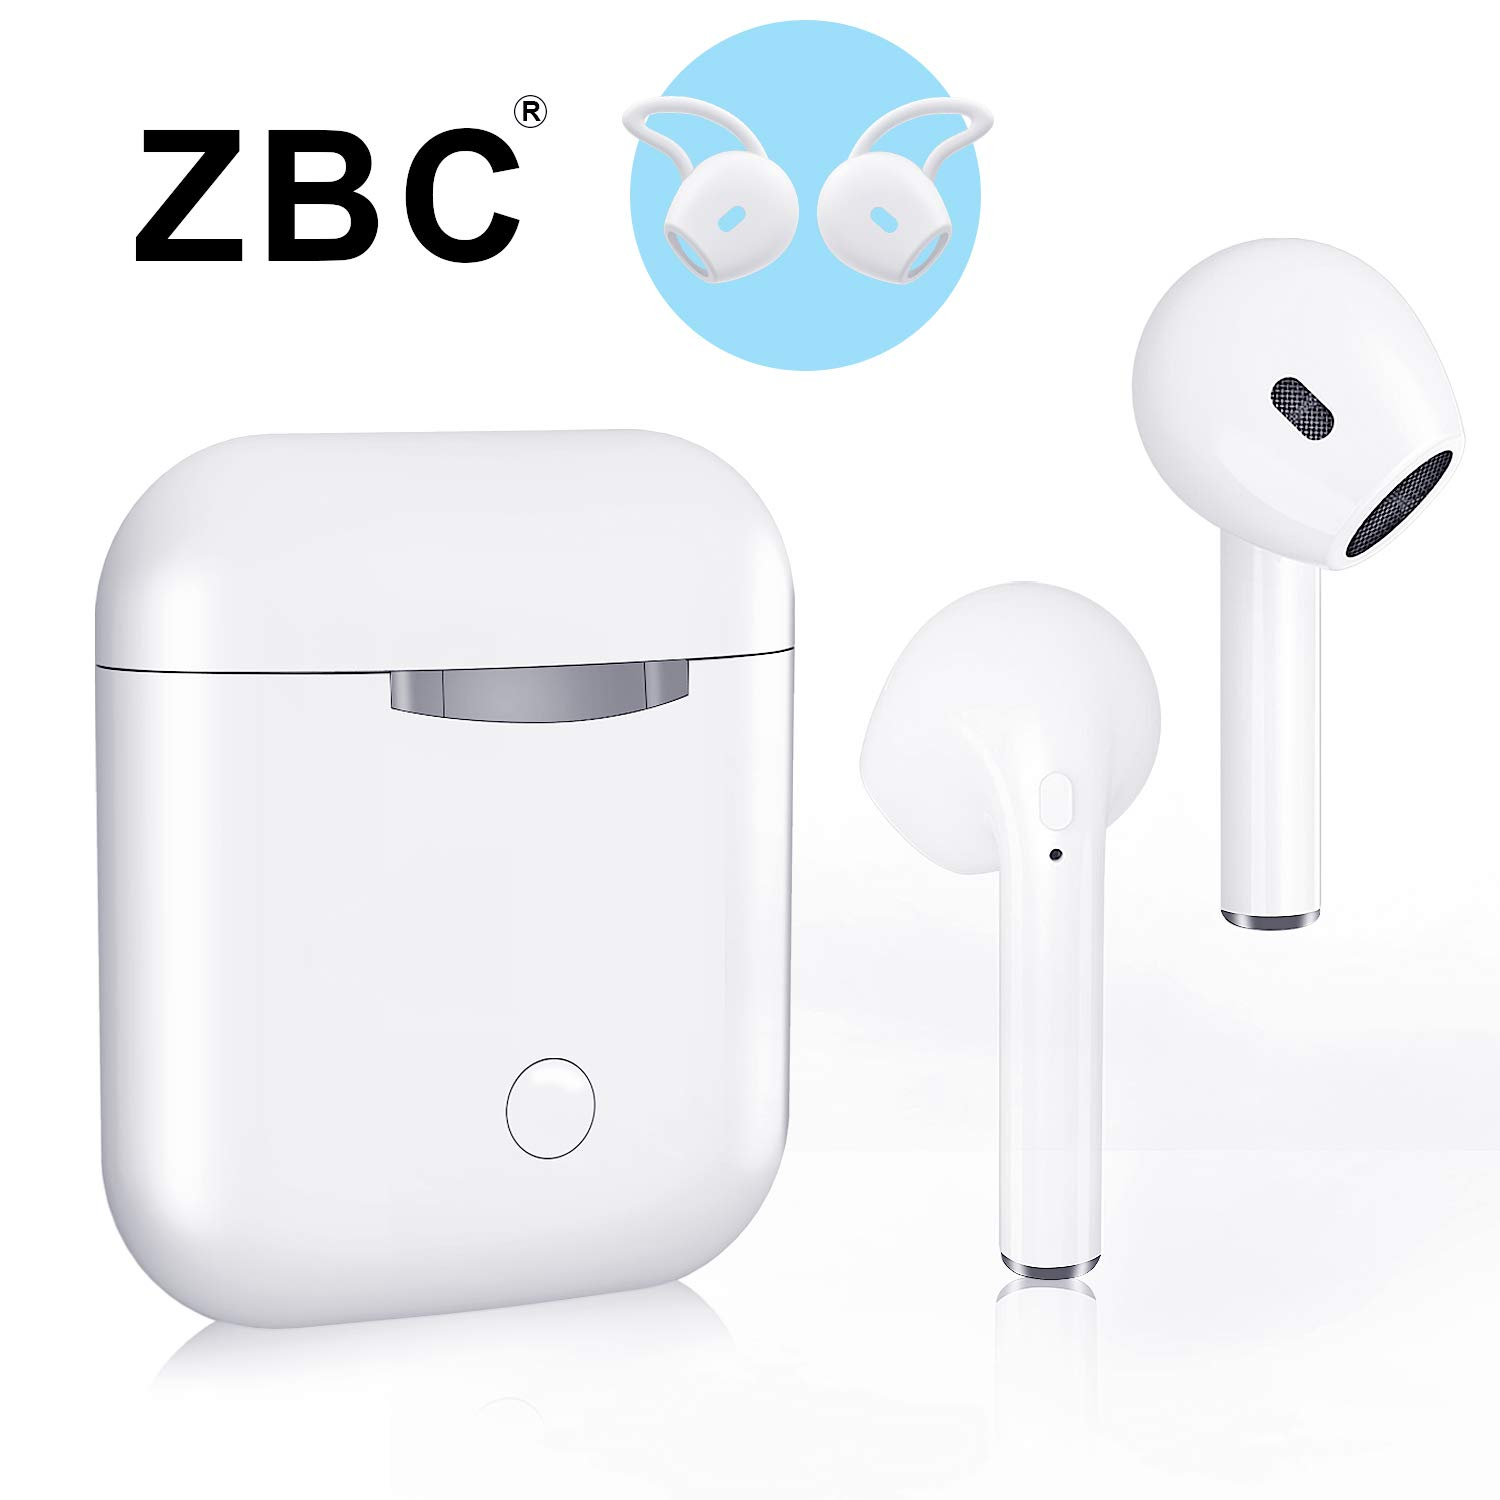 ZBC Wireless Earbuds I9 Bluetooth Earphones V5.0 Headphones in-Ear TWS Headsets Auto-Pair Airpods Mic Charging Case Sport Running Mini True Stereo Sound Noise Reduction Compatible iOS Android Samsung by ZBC (Image #1)